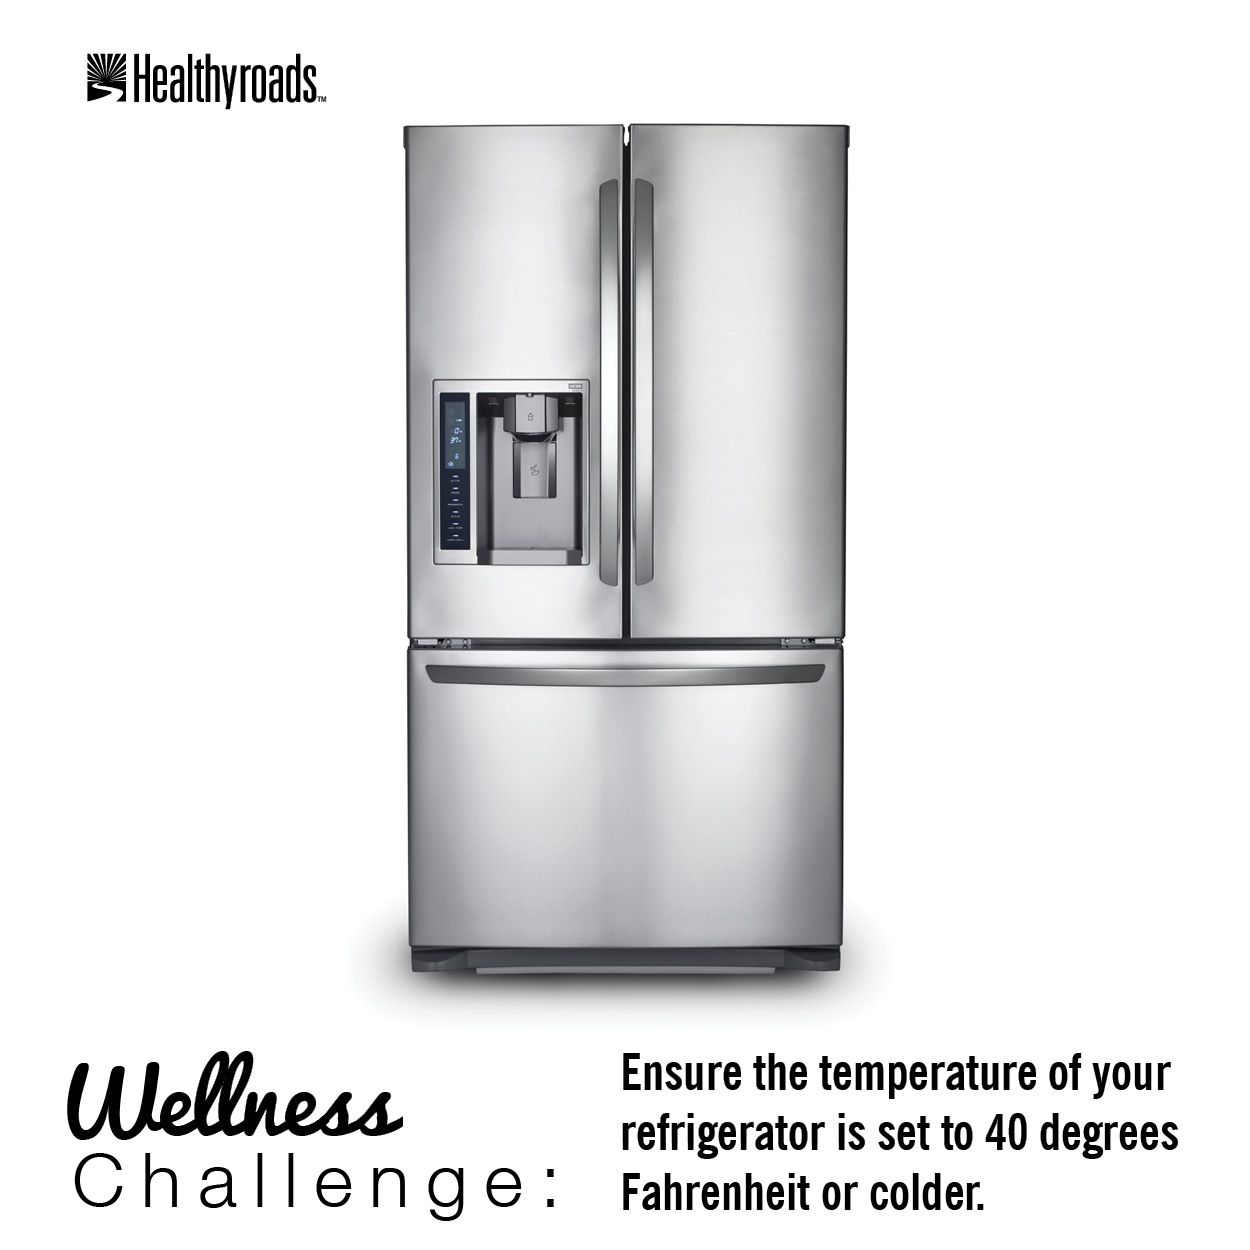 Ensure The Temperature Of Your Refrigerator Is Set To 40 Degrees